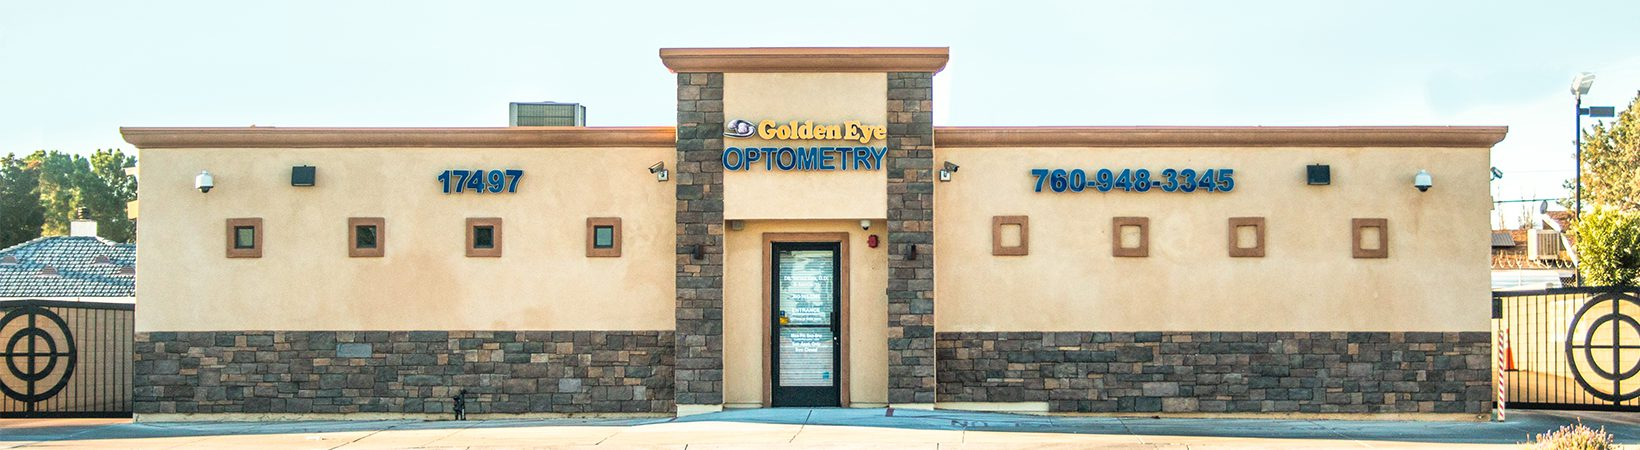 Golden Eye Optometry Building Front Picture